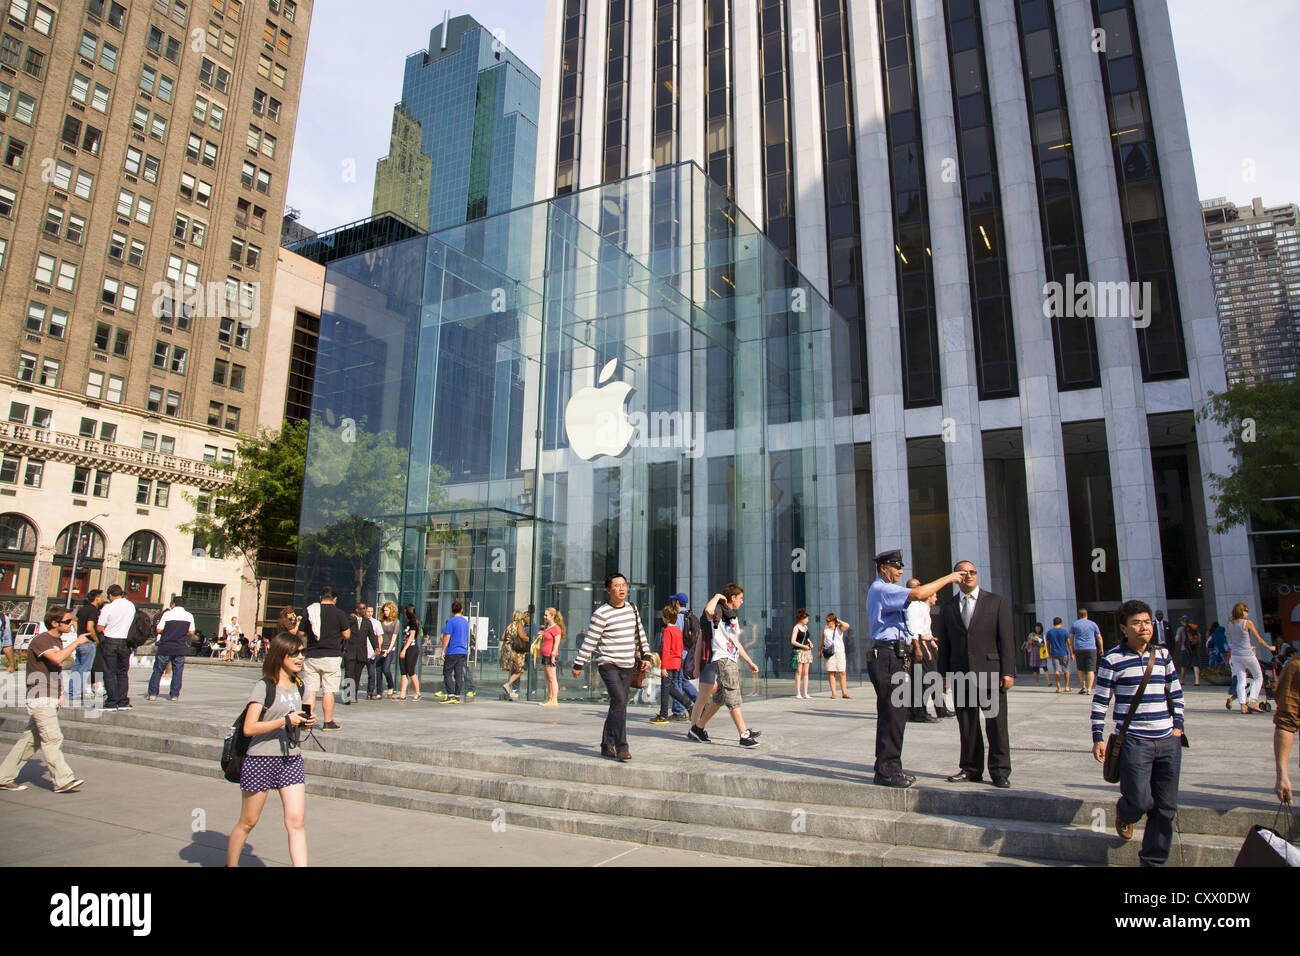 das ber hmte glas cube eingang zum apple store auf der 5th avenue in der 59th street in. Black Bedroom Furniture Sets. Home Design Ideas